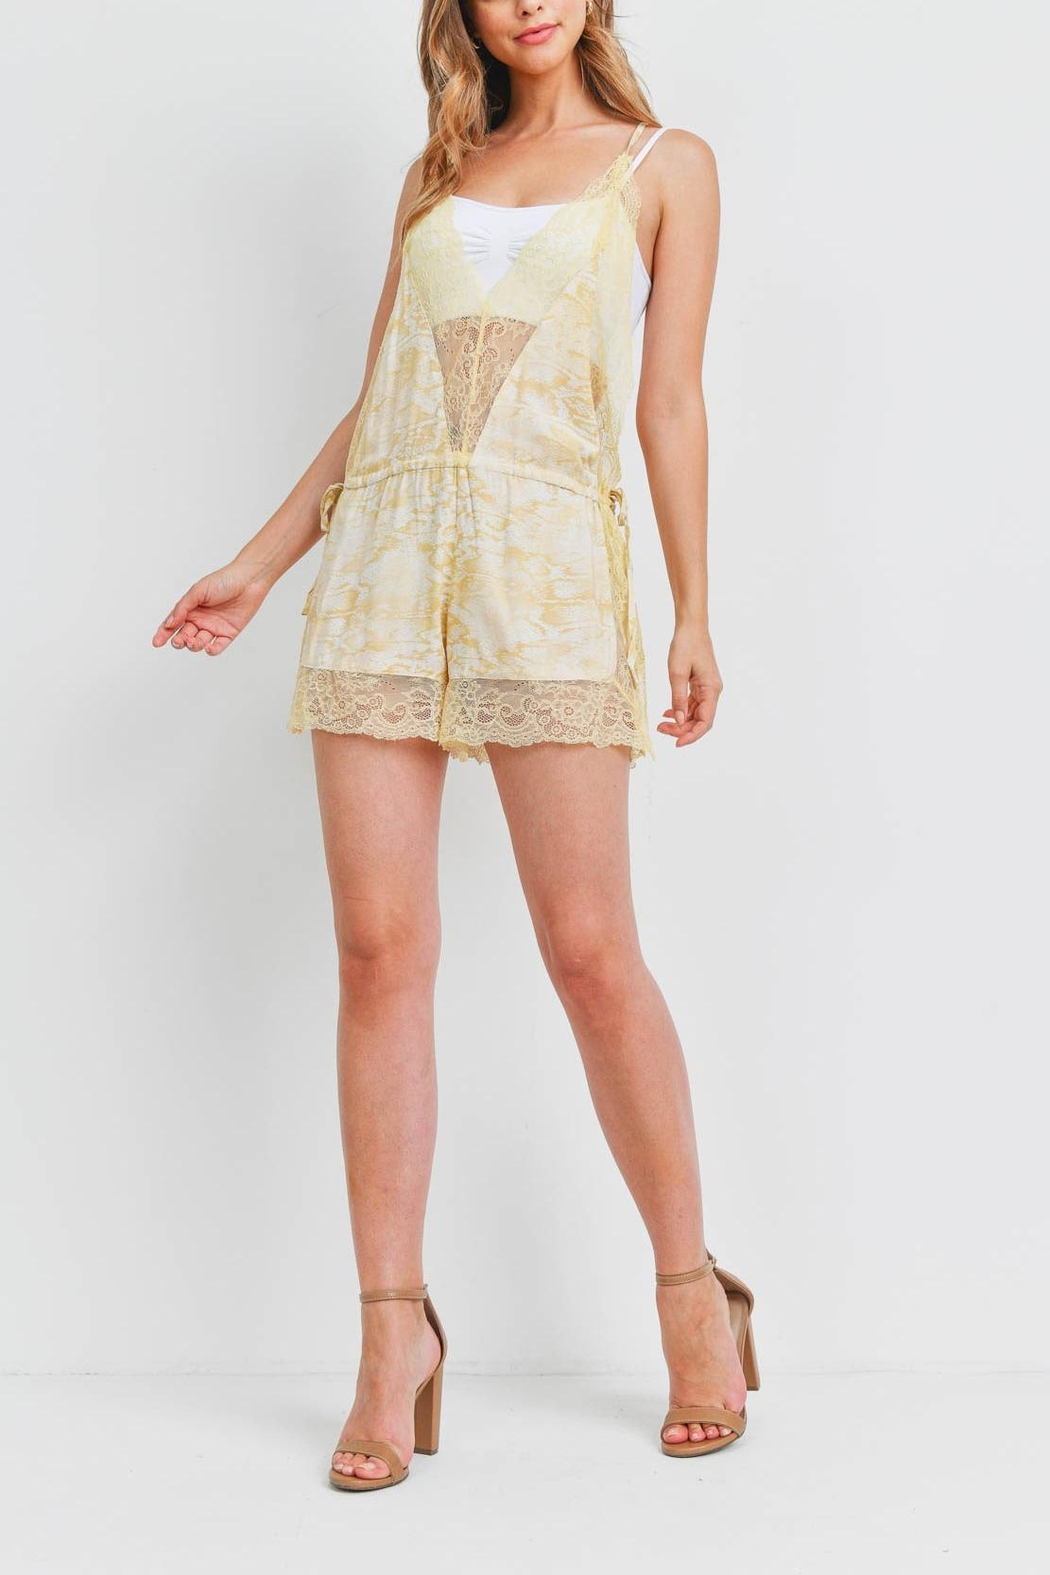 Riah Fashion Light Yellow Romper - Side Cropped Image